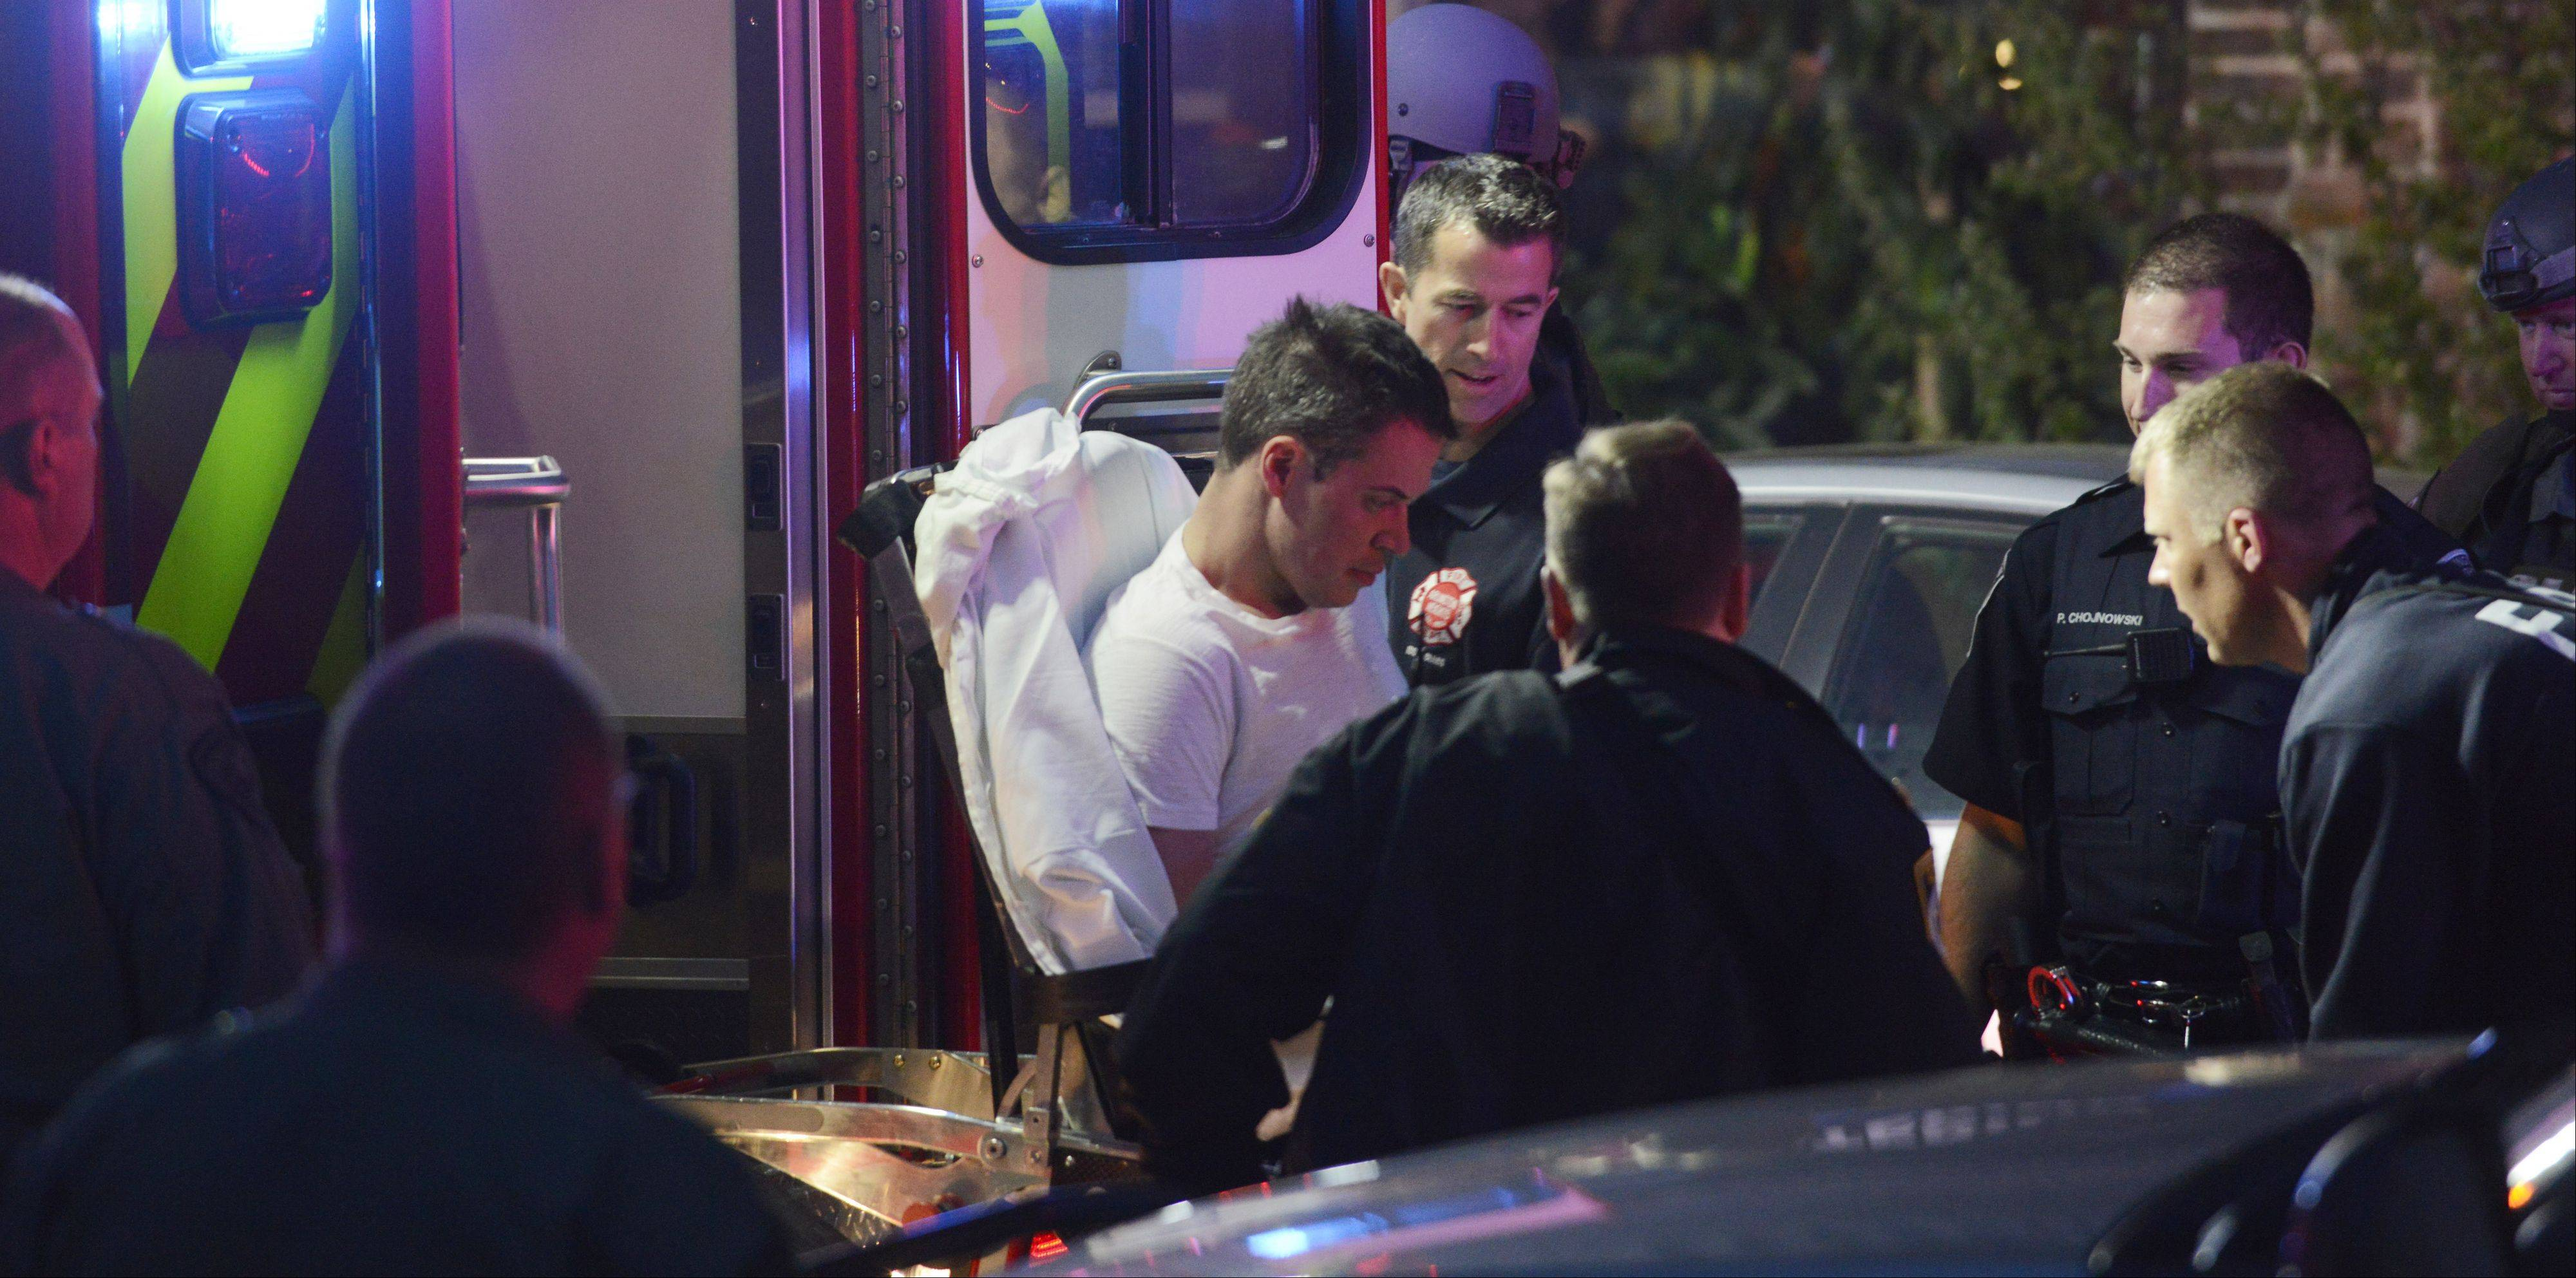 Jeffrey Sterner is loaded into the back of an ambulance to be taken to Northwest Community Hospital for evaluation at the conclusion of a May 4 police standoff in downtown Arlington Heights.